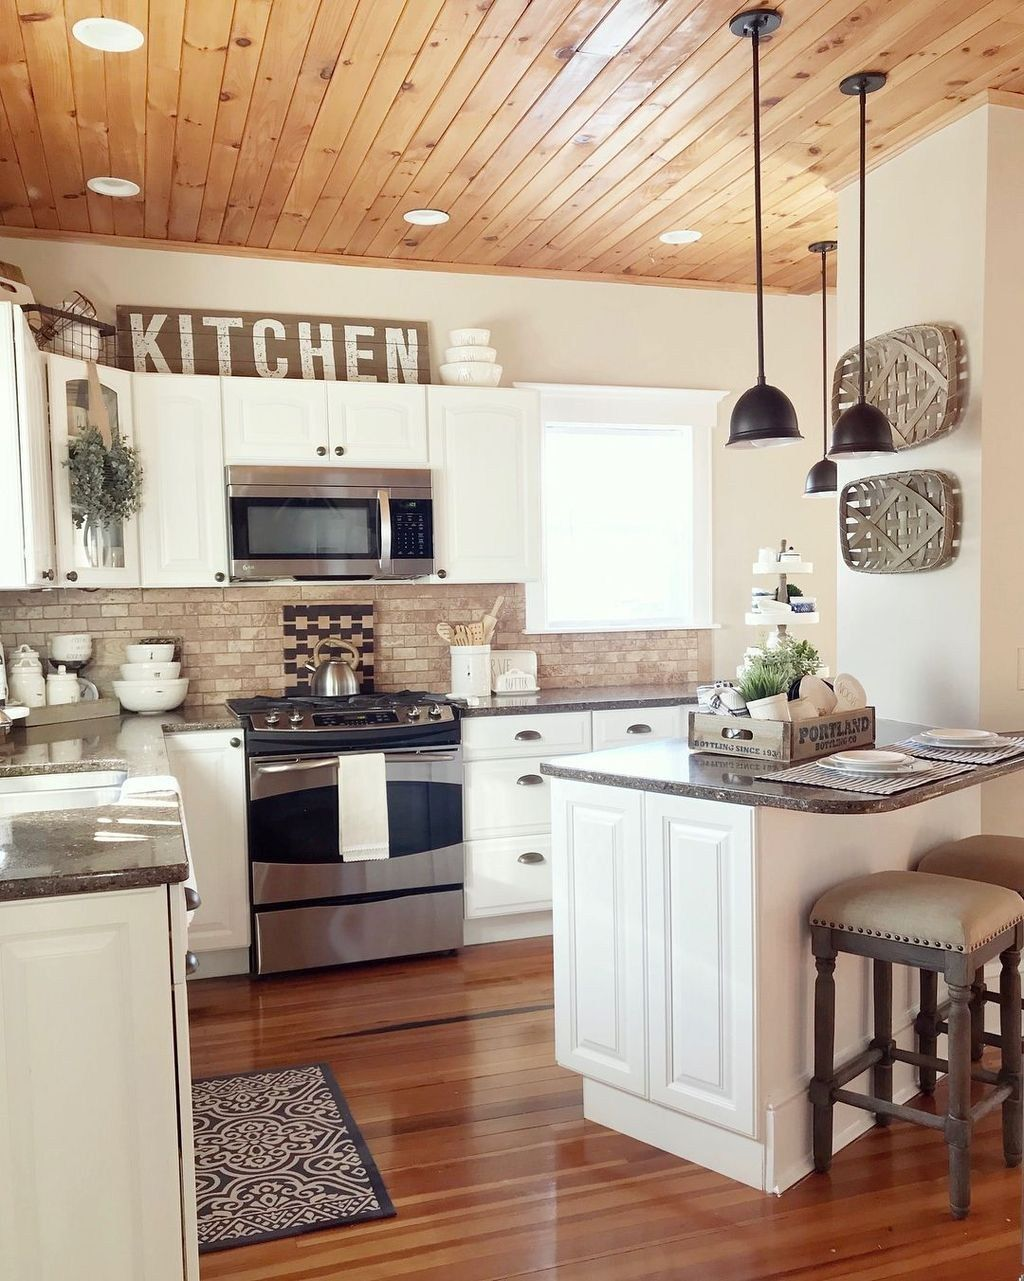 Pin by Ashlyn Belisle on Farm Houses in Pinterest Home